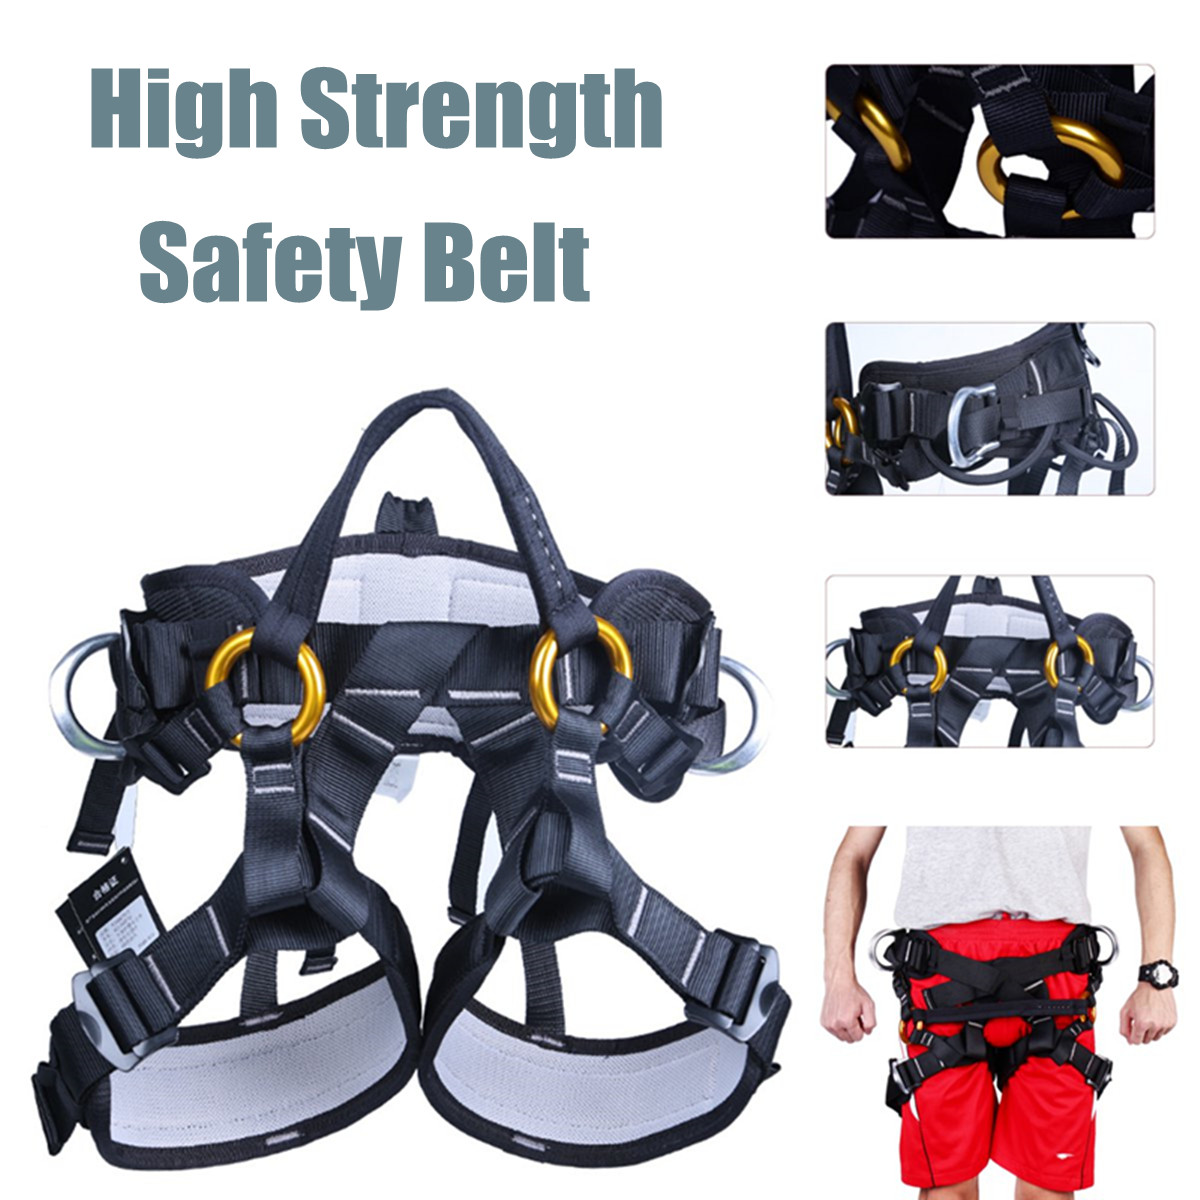 Safety Rock Climbing Rappel Seat Harness Belt Tree Arborist Fall Protection Equipment For Mountaineering Rescuing Rock